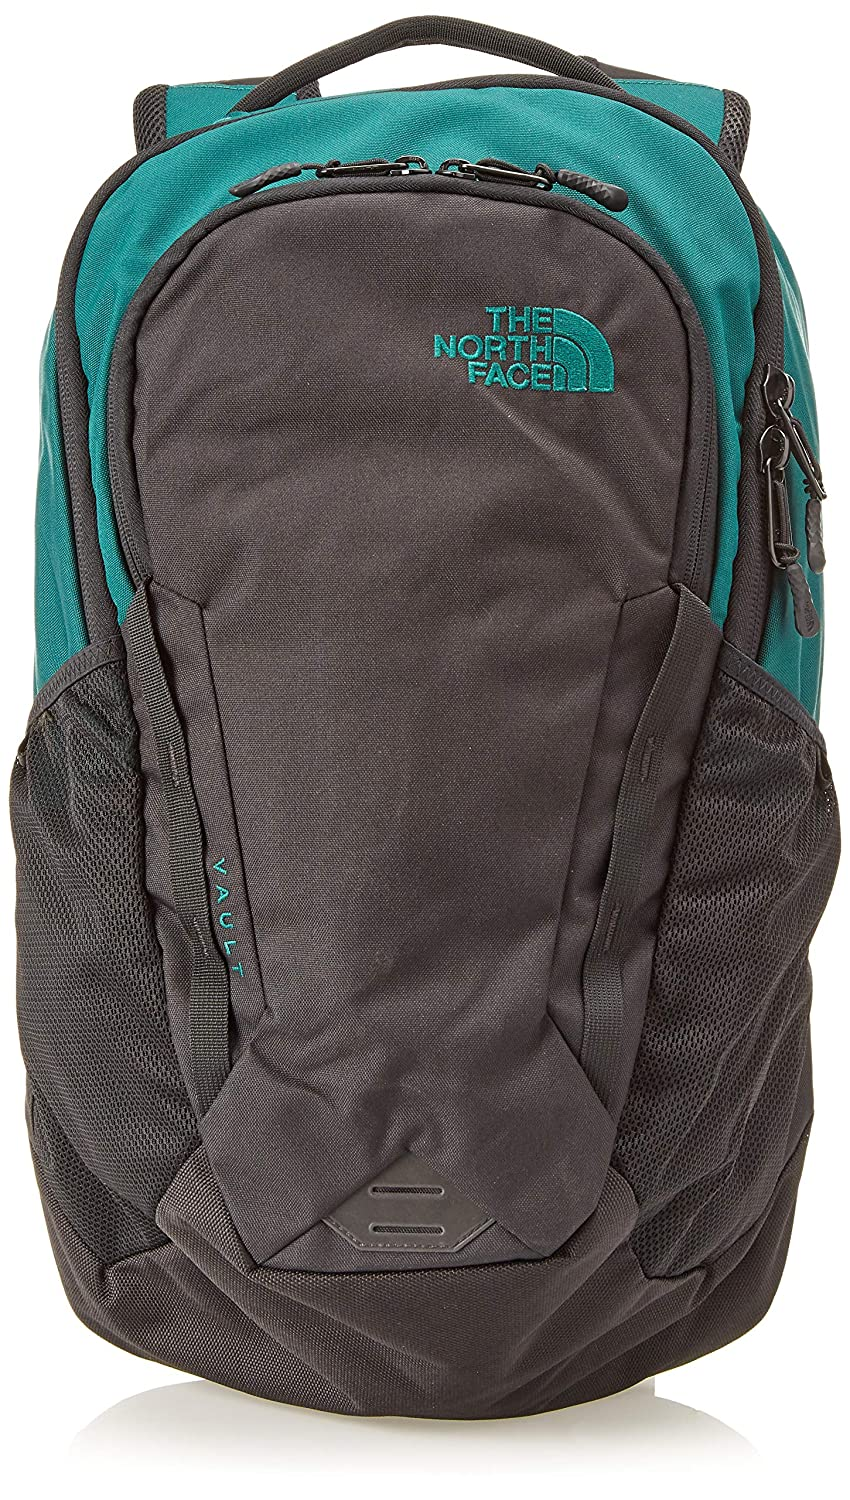 7e4a912c0 Amazon.com | The North Face Unisex Vault Backpack Botanical Garden ...